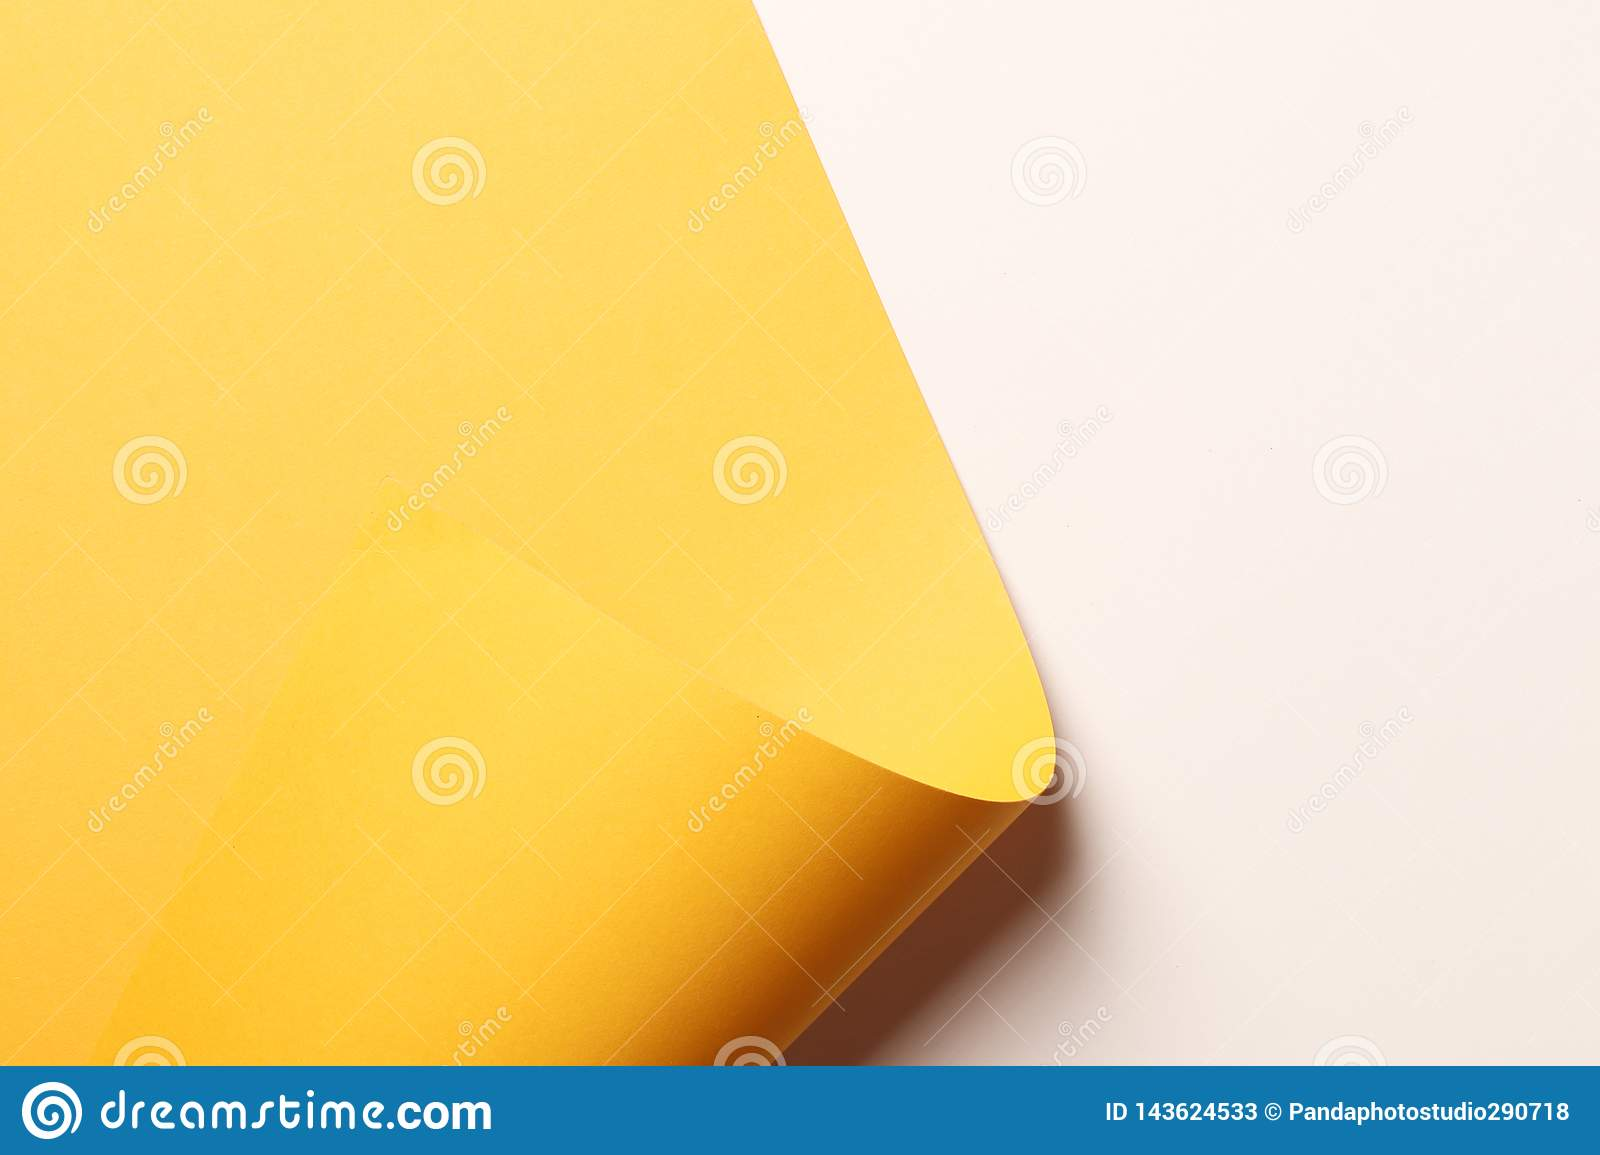 Bright yellow abstract paper background